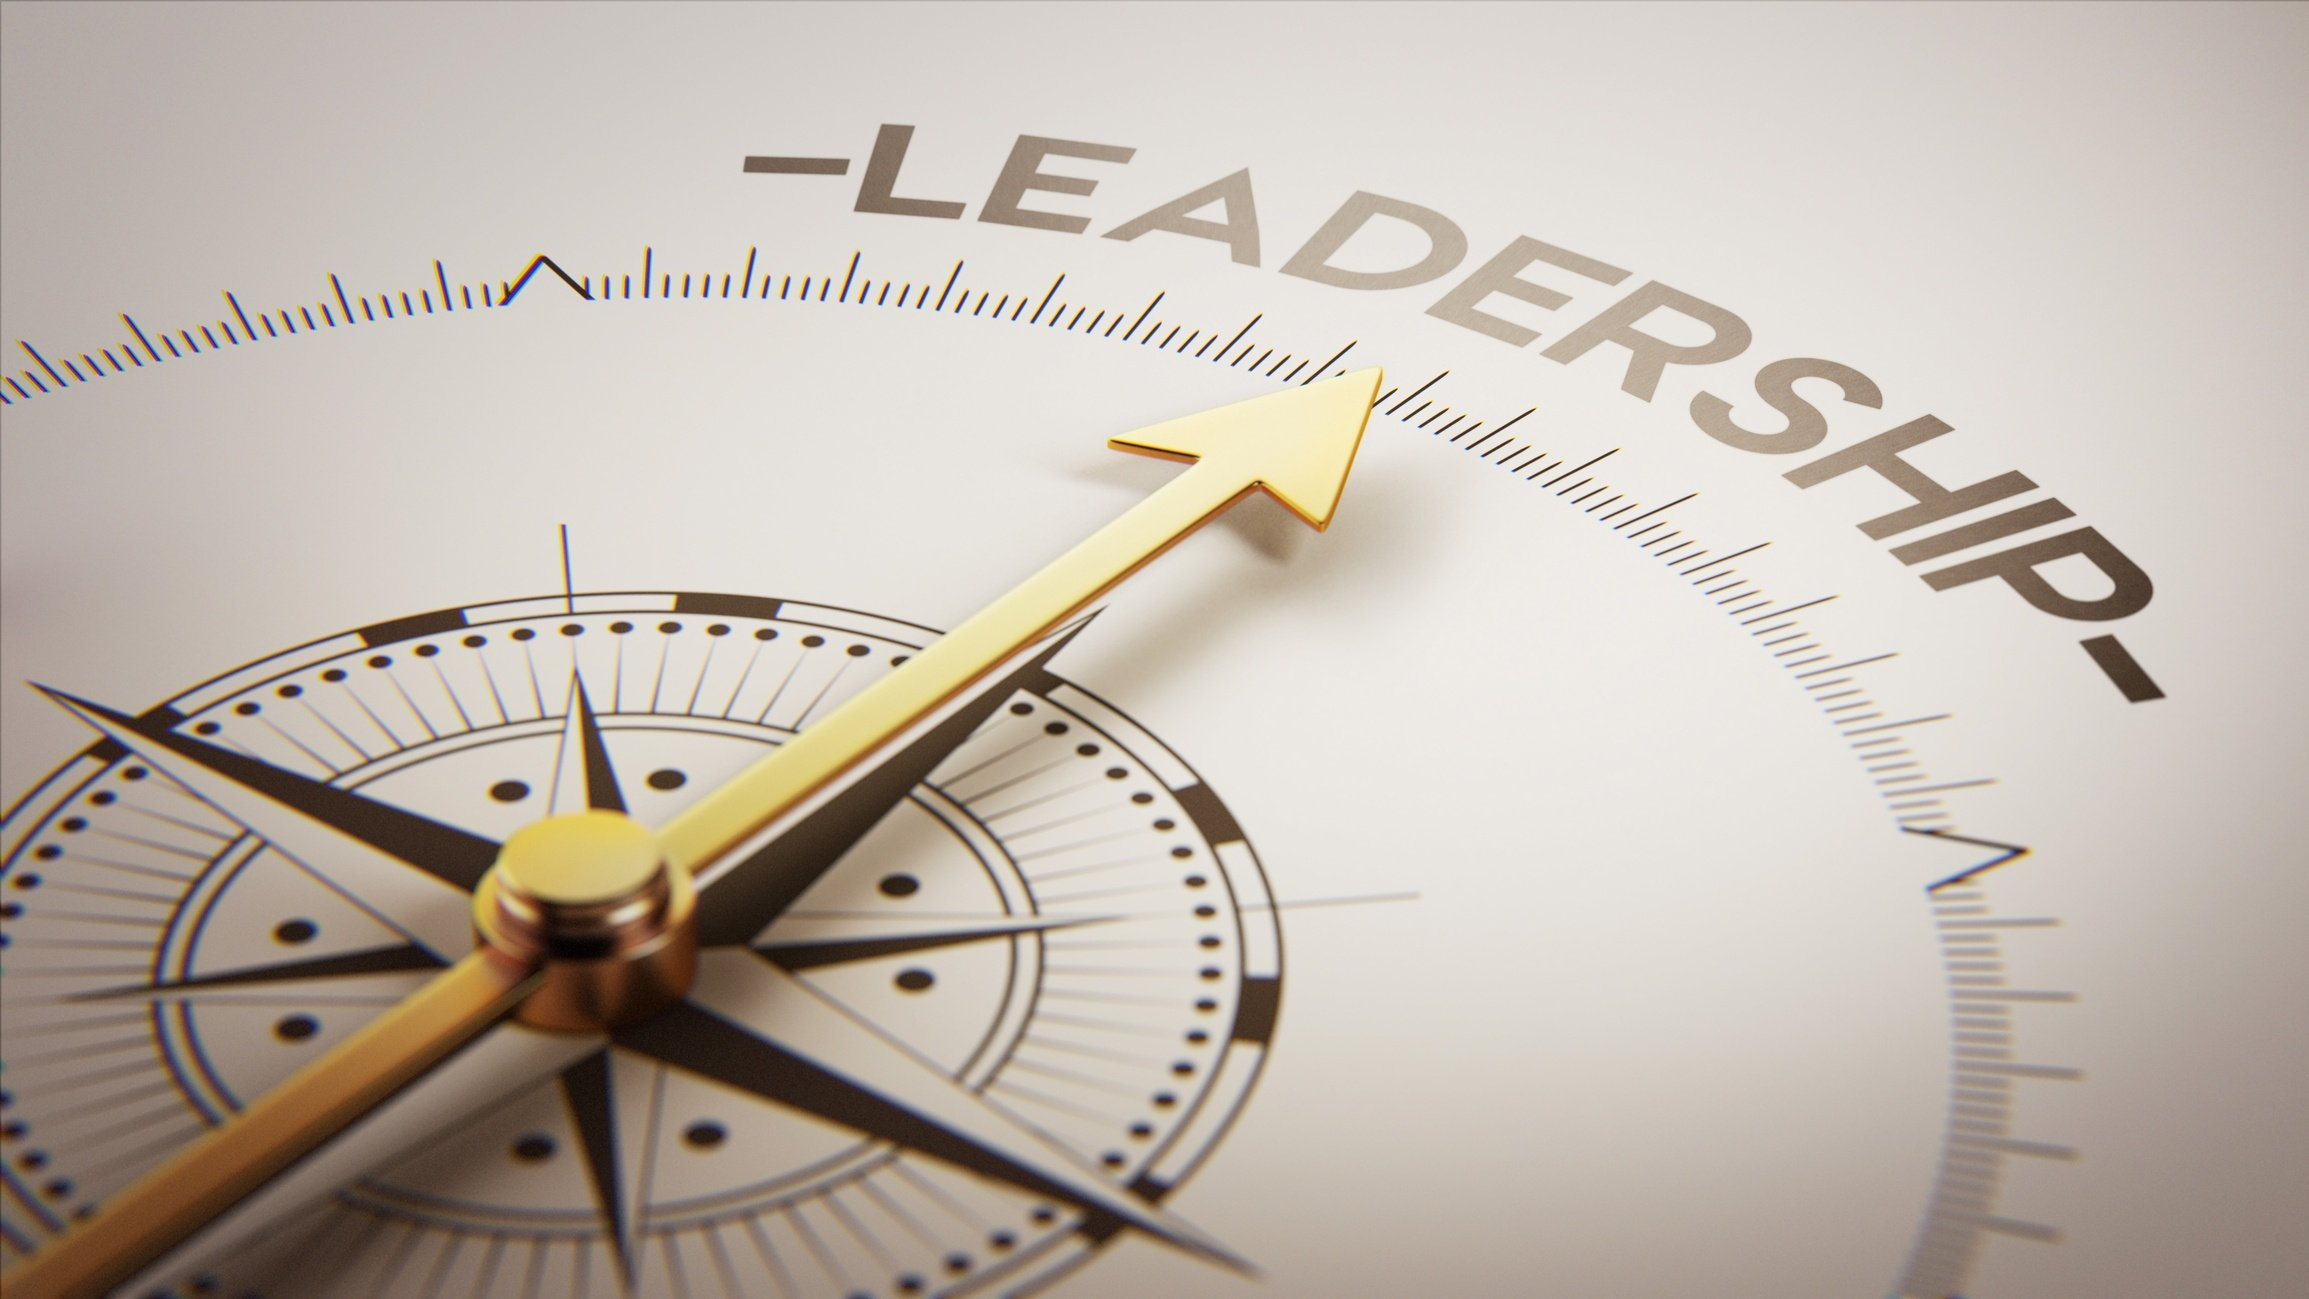 A compass to authentic leadership